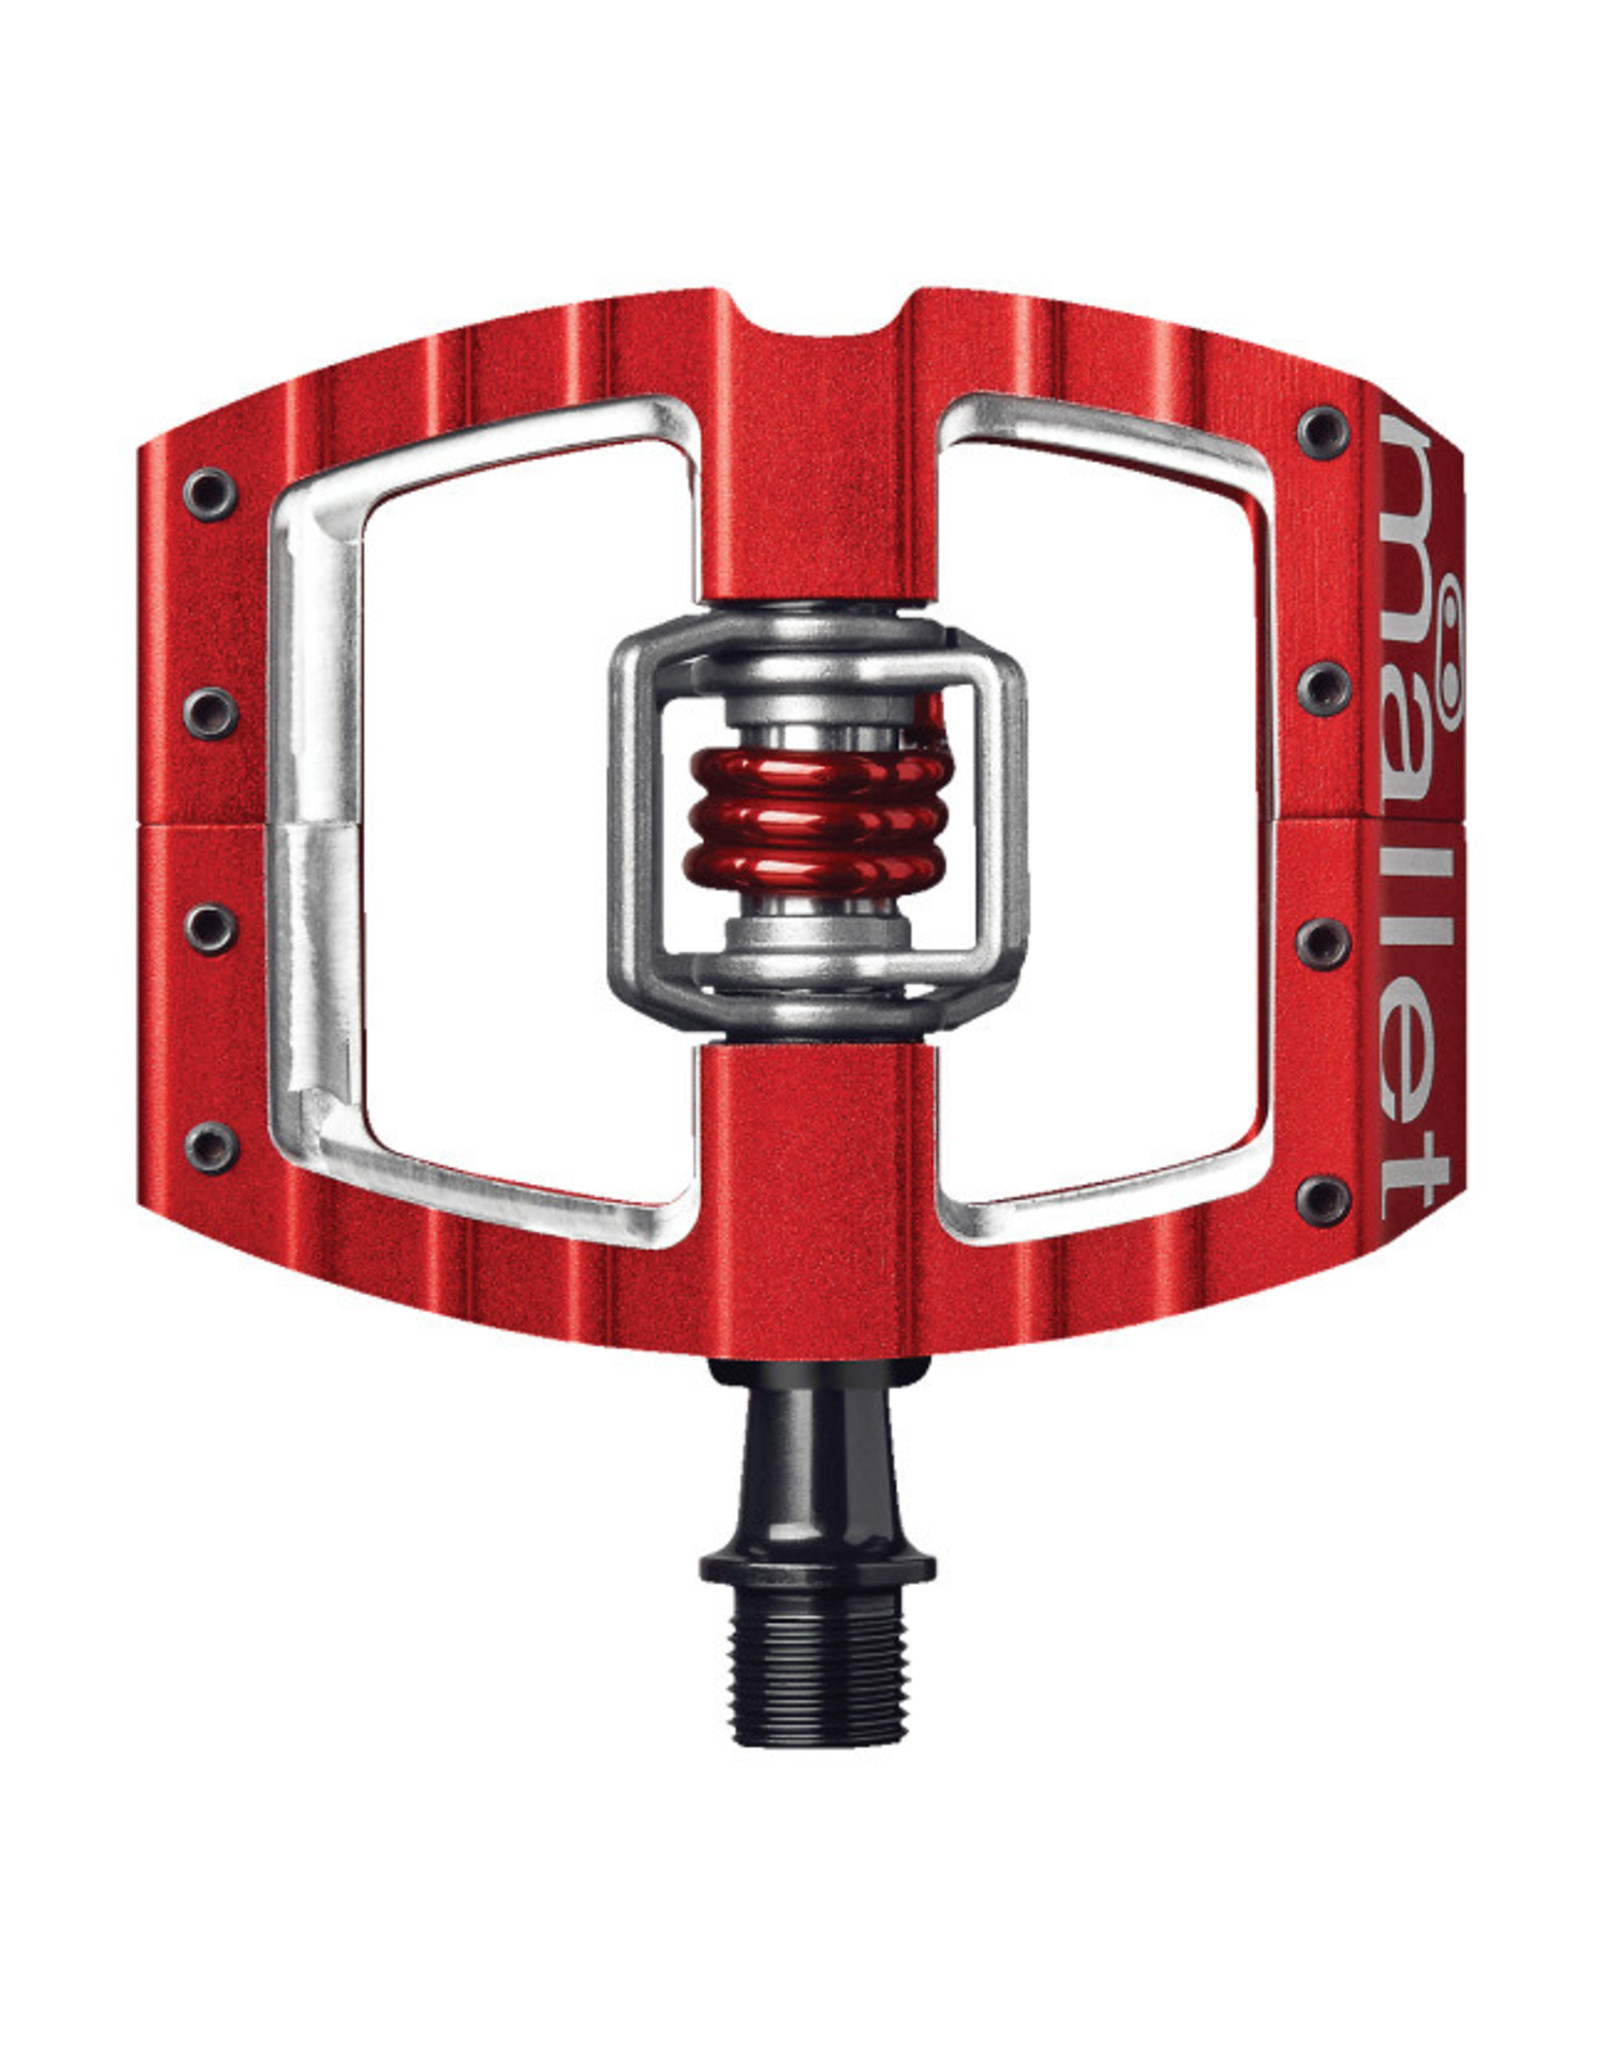 """Crank Brothers Crank Brothers Mallet DH Pedals - Dual Sided Clipless with Platform, Aluminum, 9/16"""", Red"""